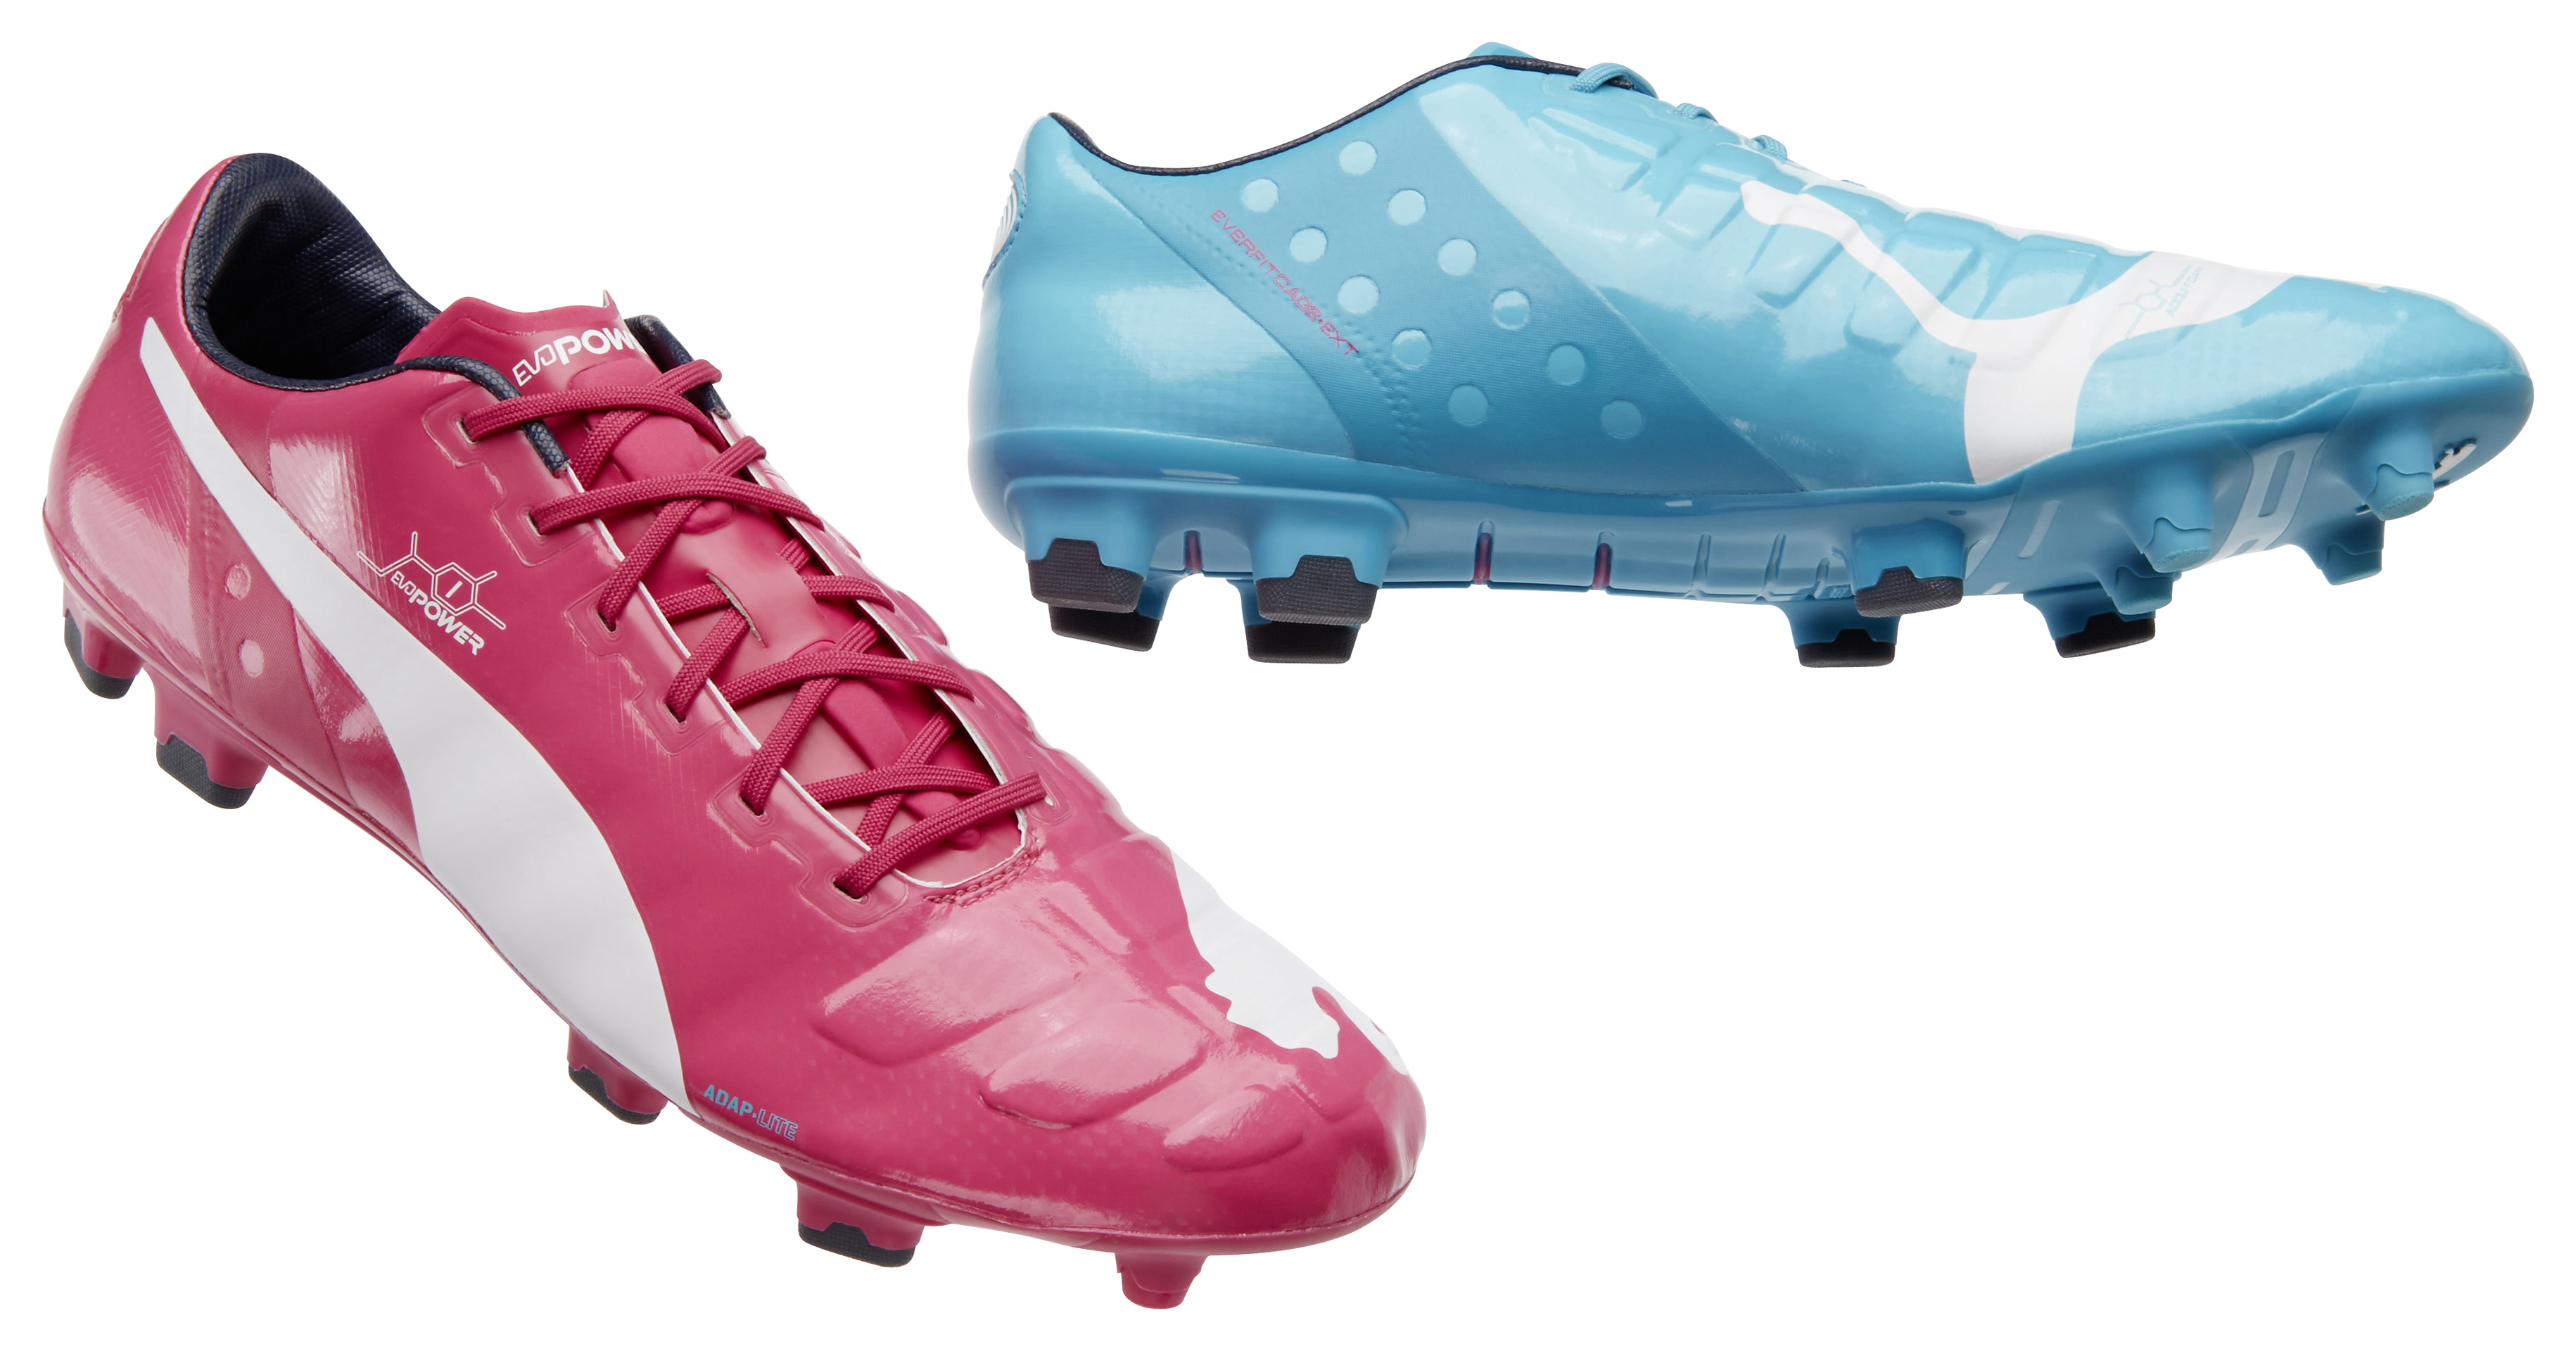 PUMA_evoPOWER_Tricks_103024_01.jpg